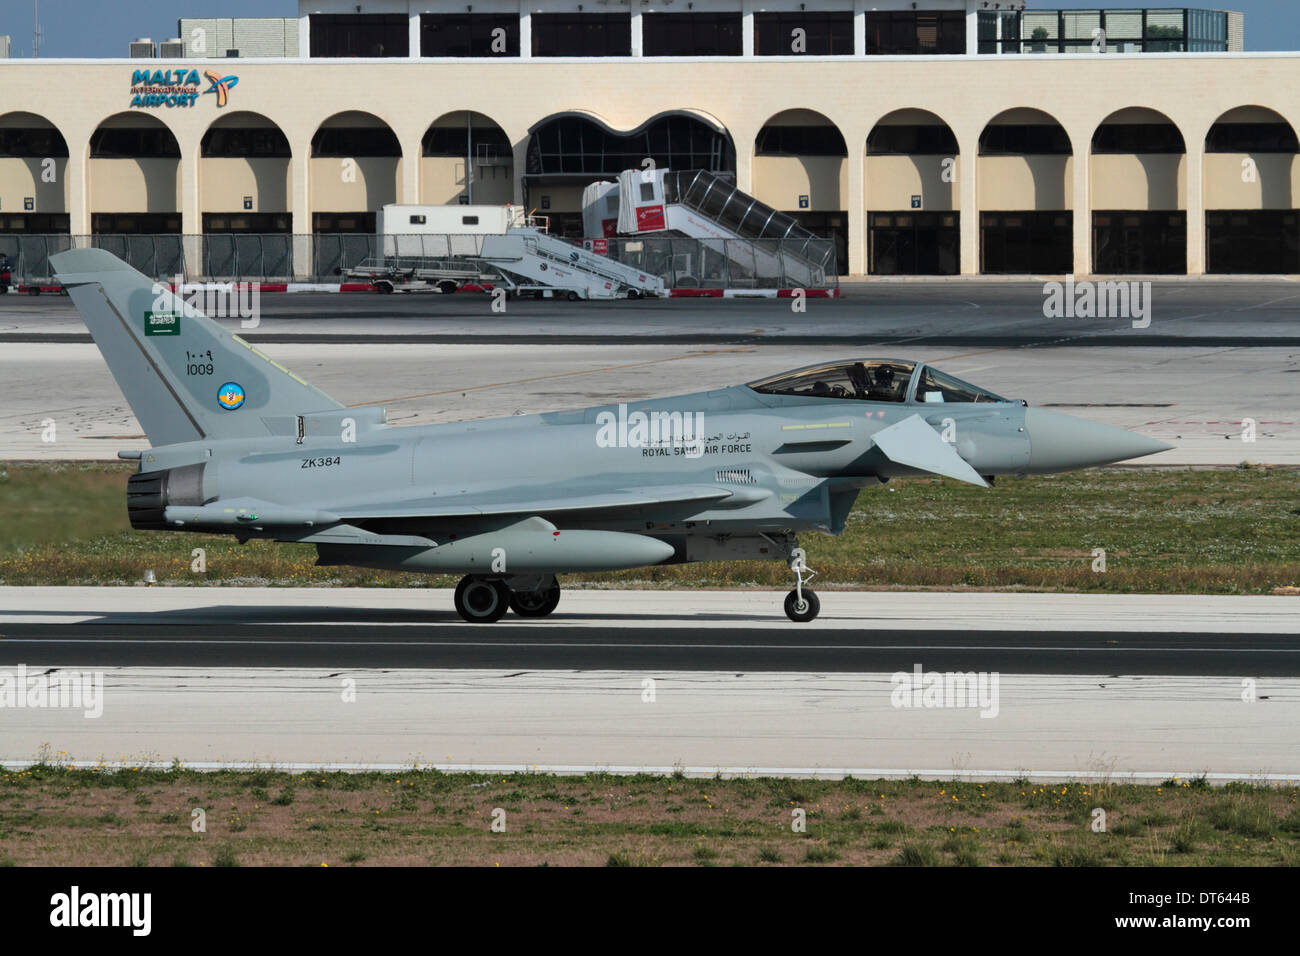 Eurofighter Typhoon jet fighter of the Royal Saudi Air Force taxiing for departure from Malta - Stock Image